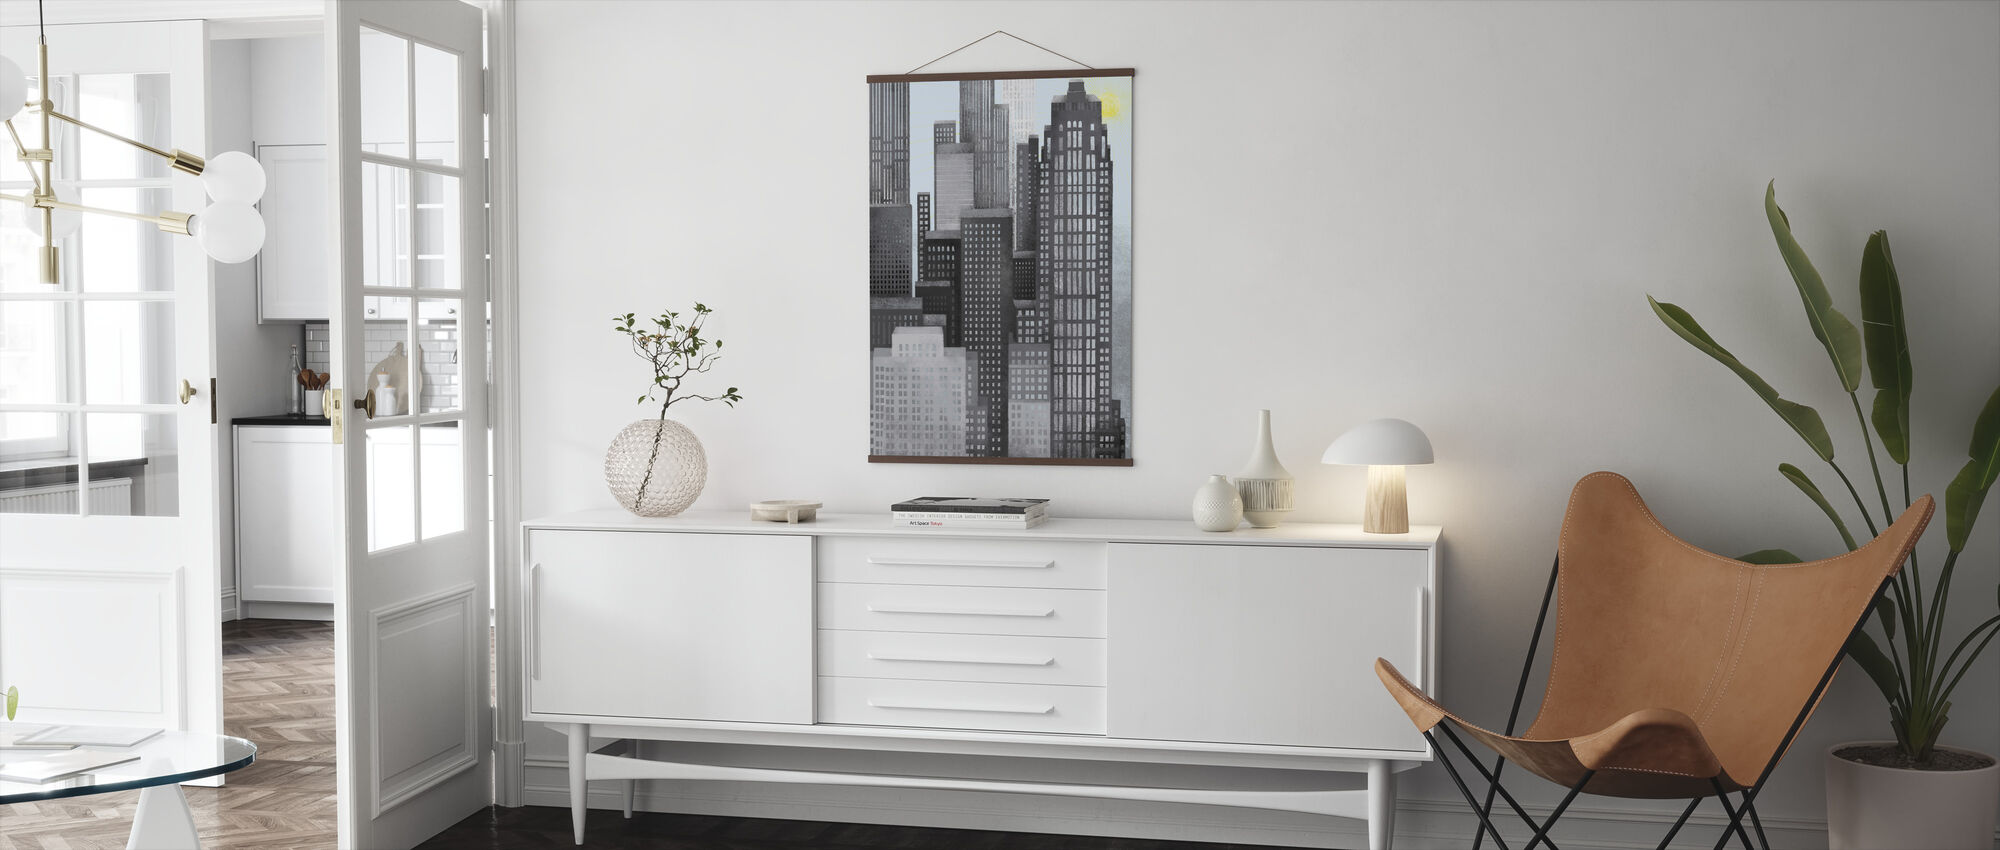 Sun and Skyscrapers - Poster - Living Room